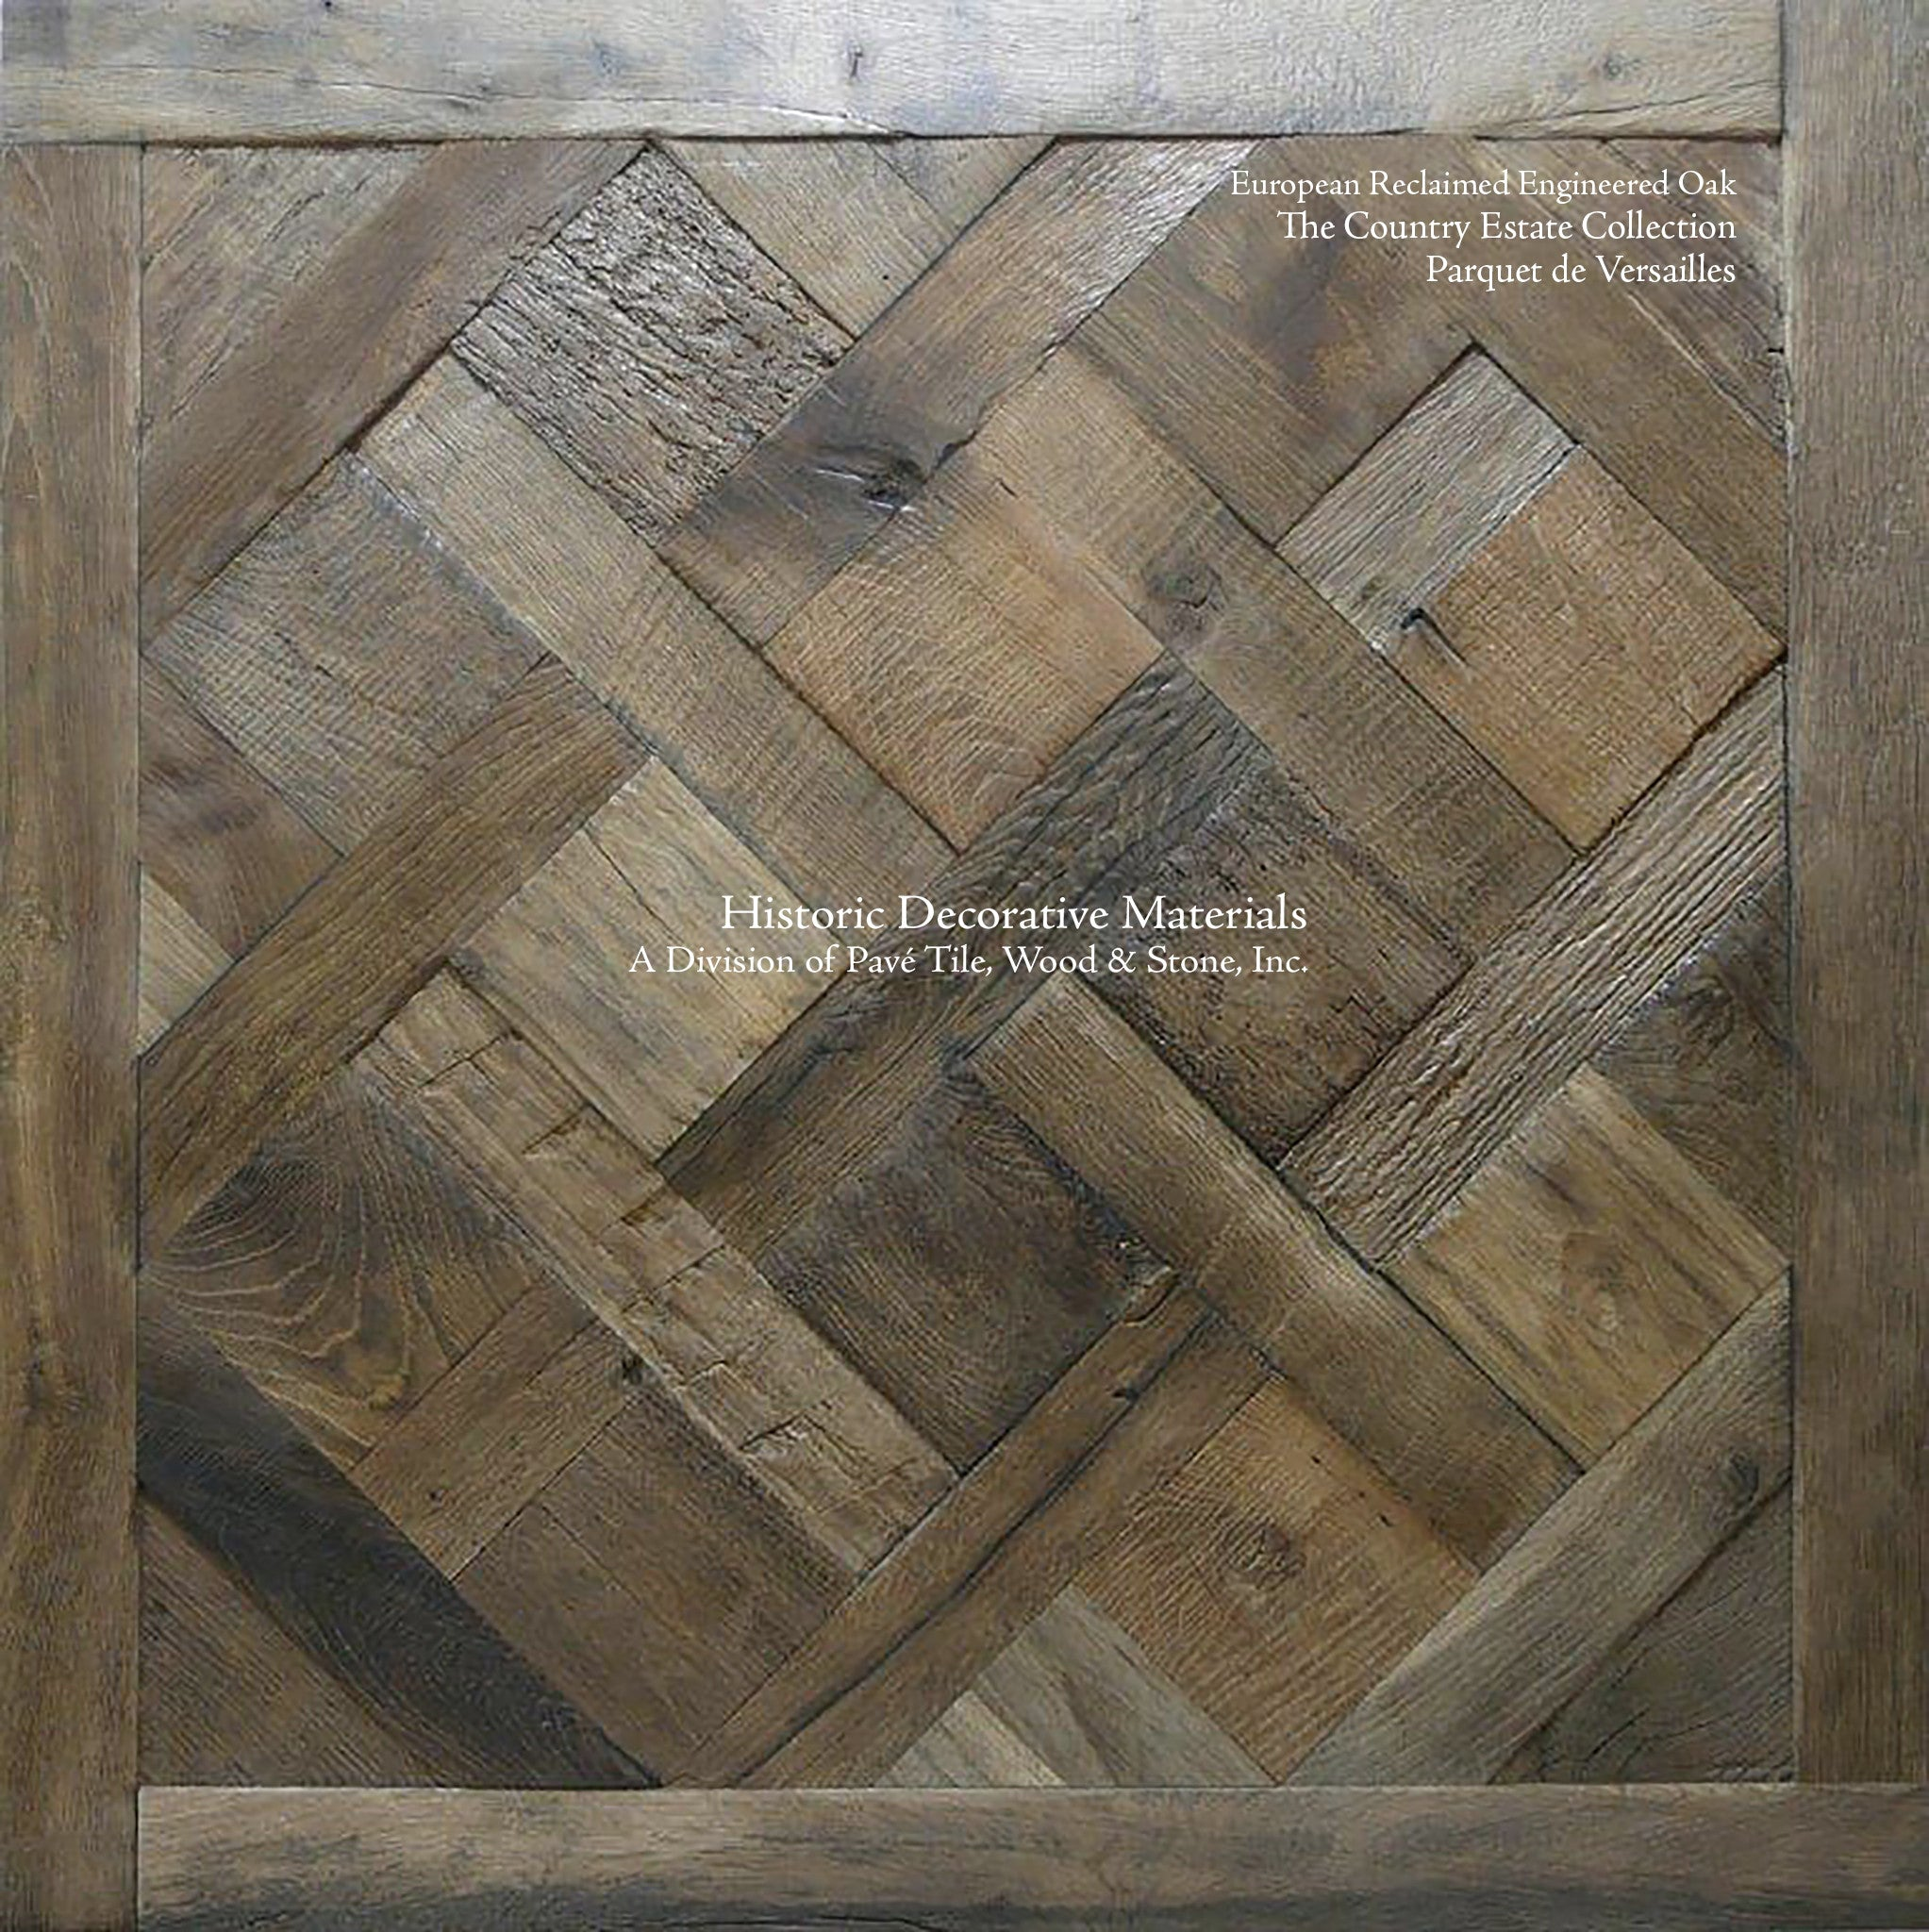 products width floor engineered flooring in country pattern ii mixed finished parquet floors oak and versailles estate european de hand reclaimed two